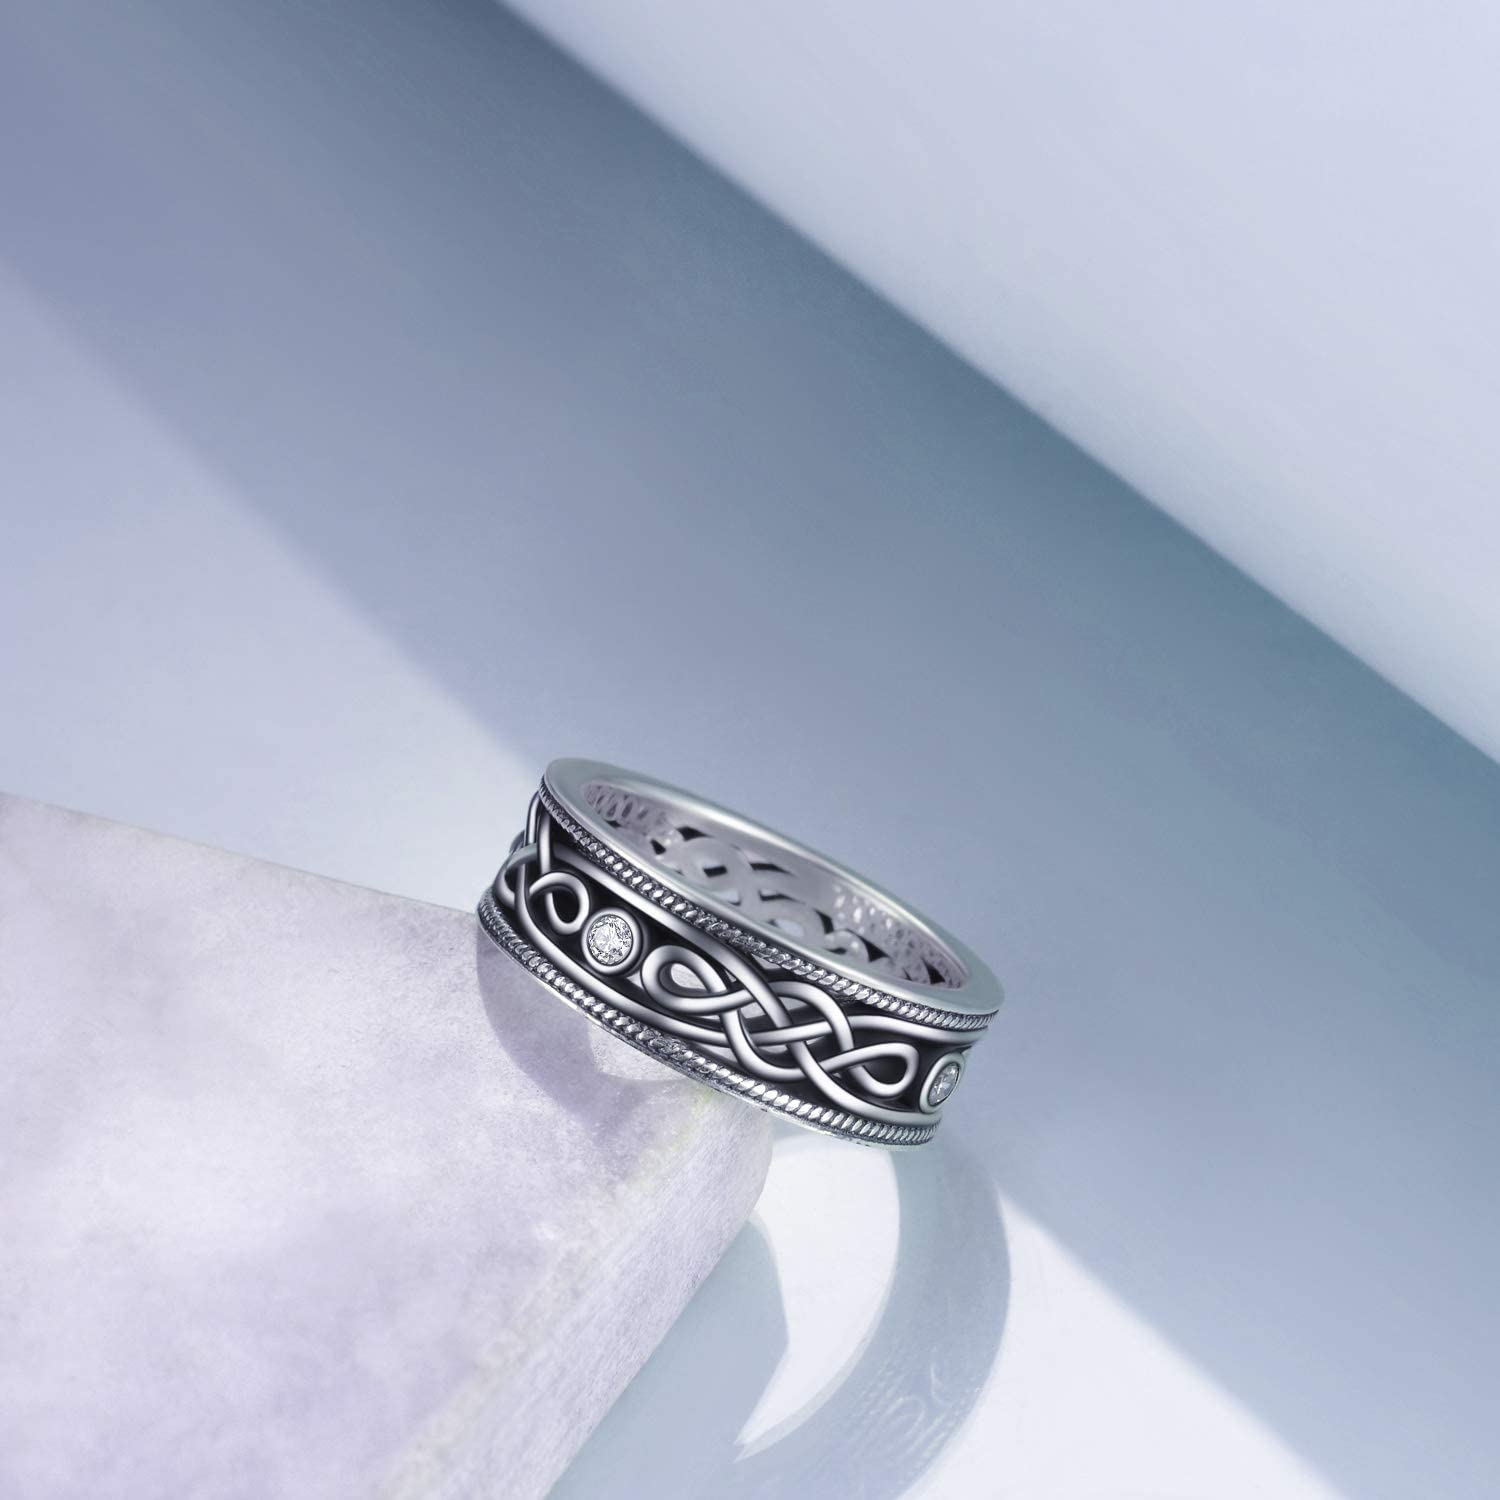 Details about  /MENDINO Men/'s Stainless Steel Ring Vintage Celtic Knot Oval Cubic Zircon Blue